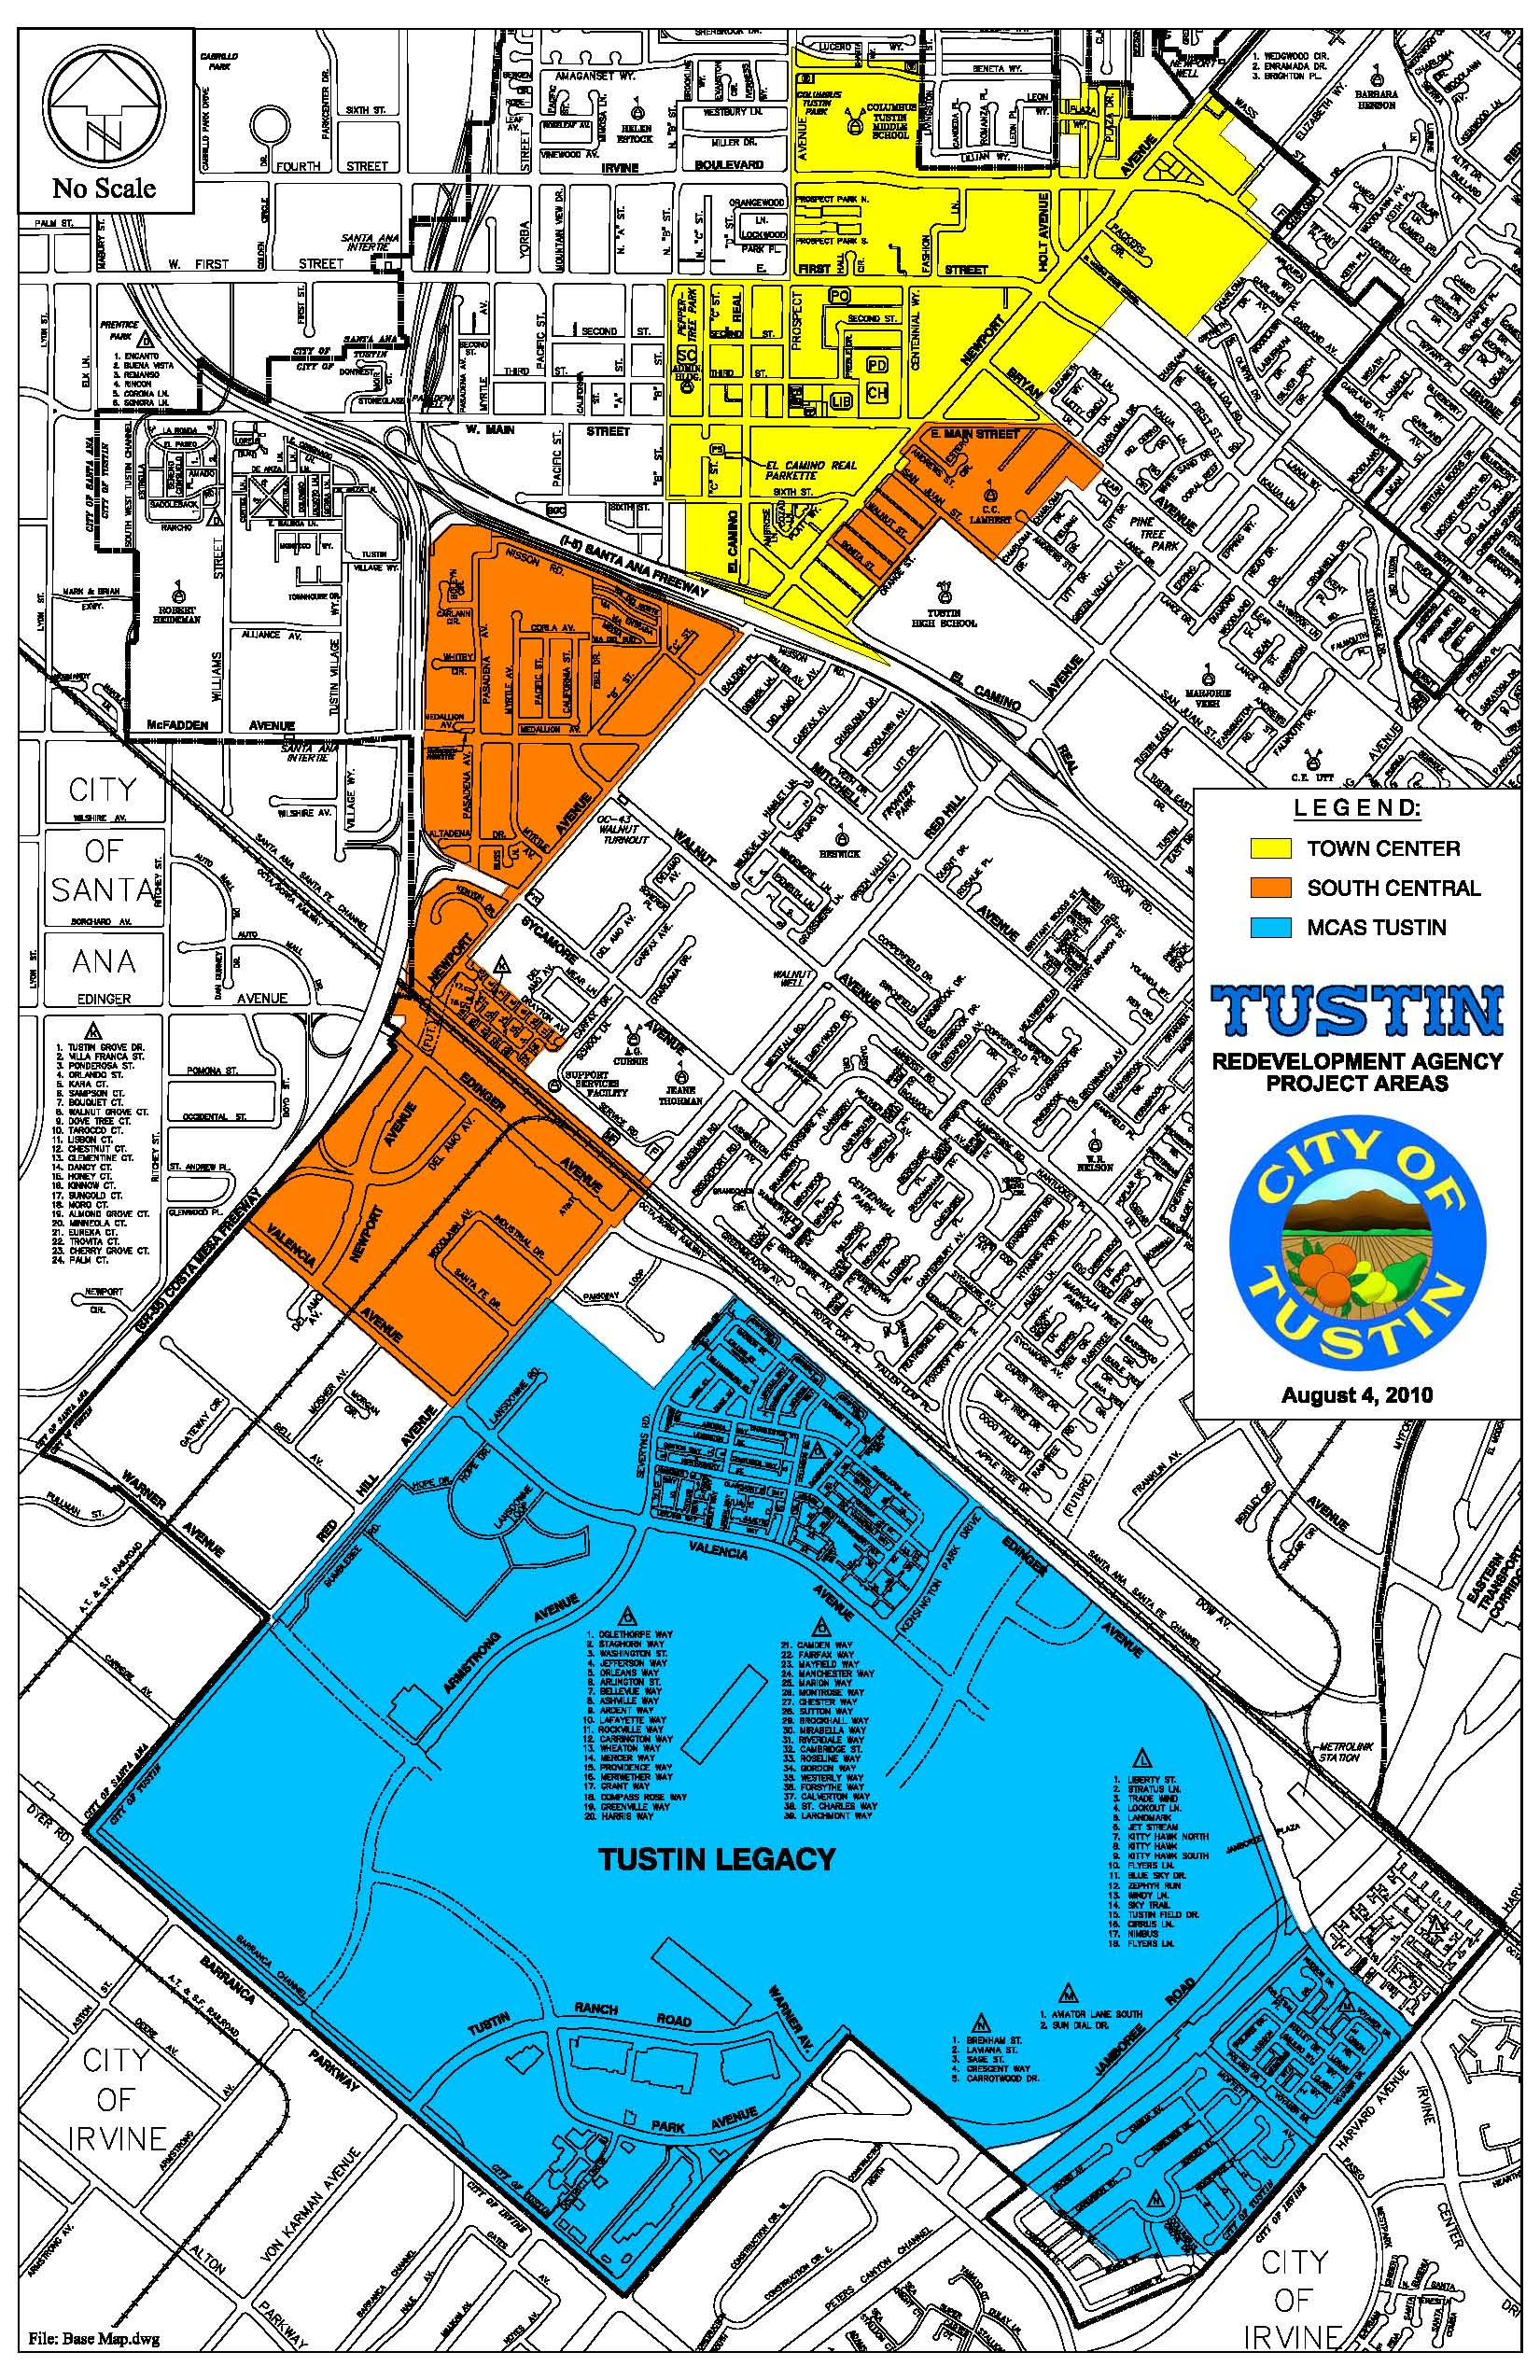 Tustin Map of Redevelopment Project Areas